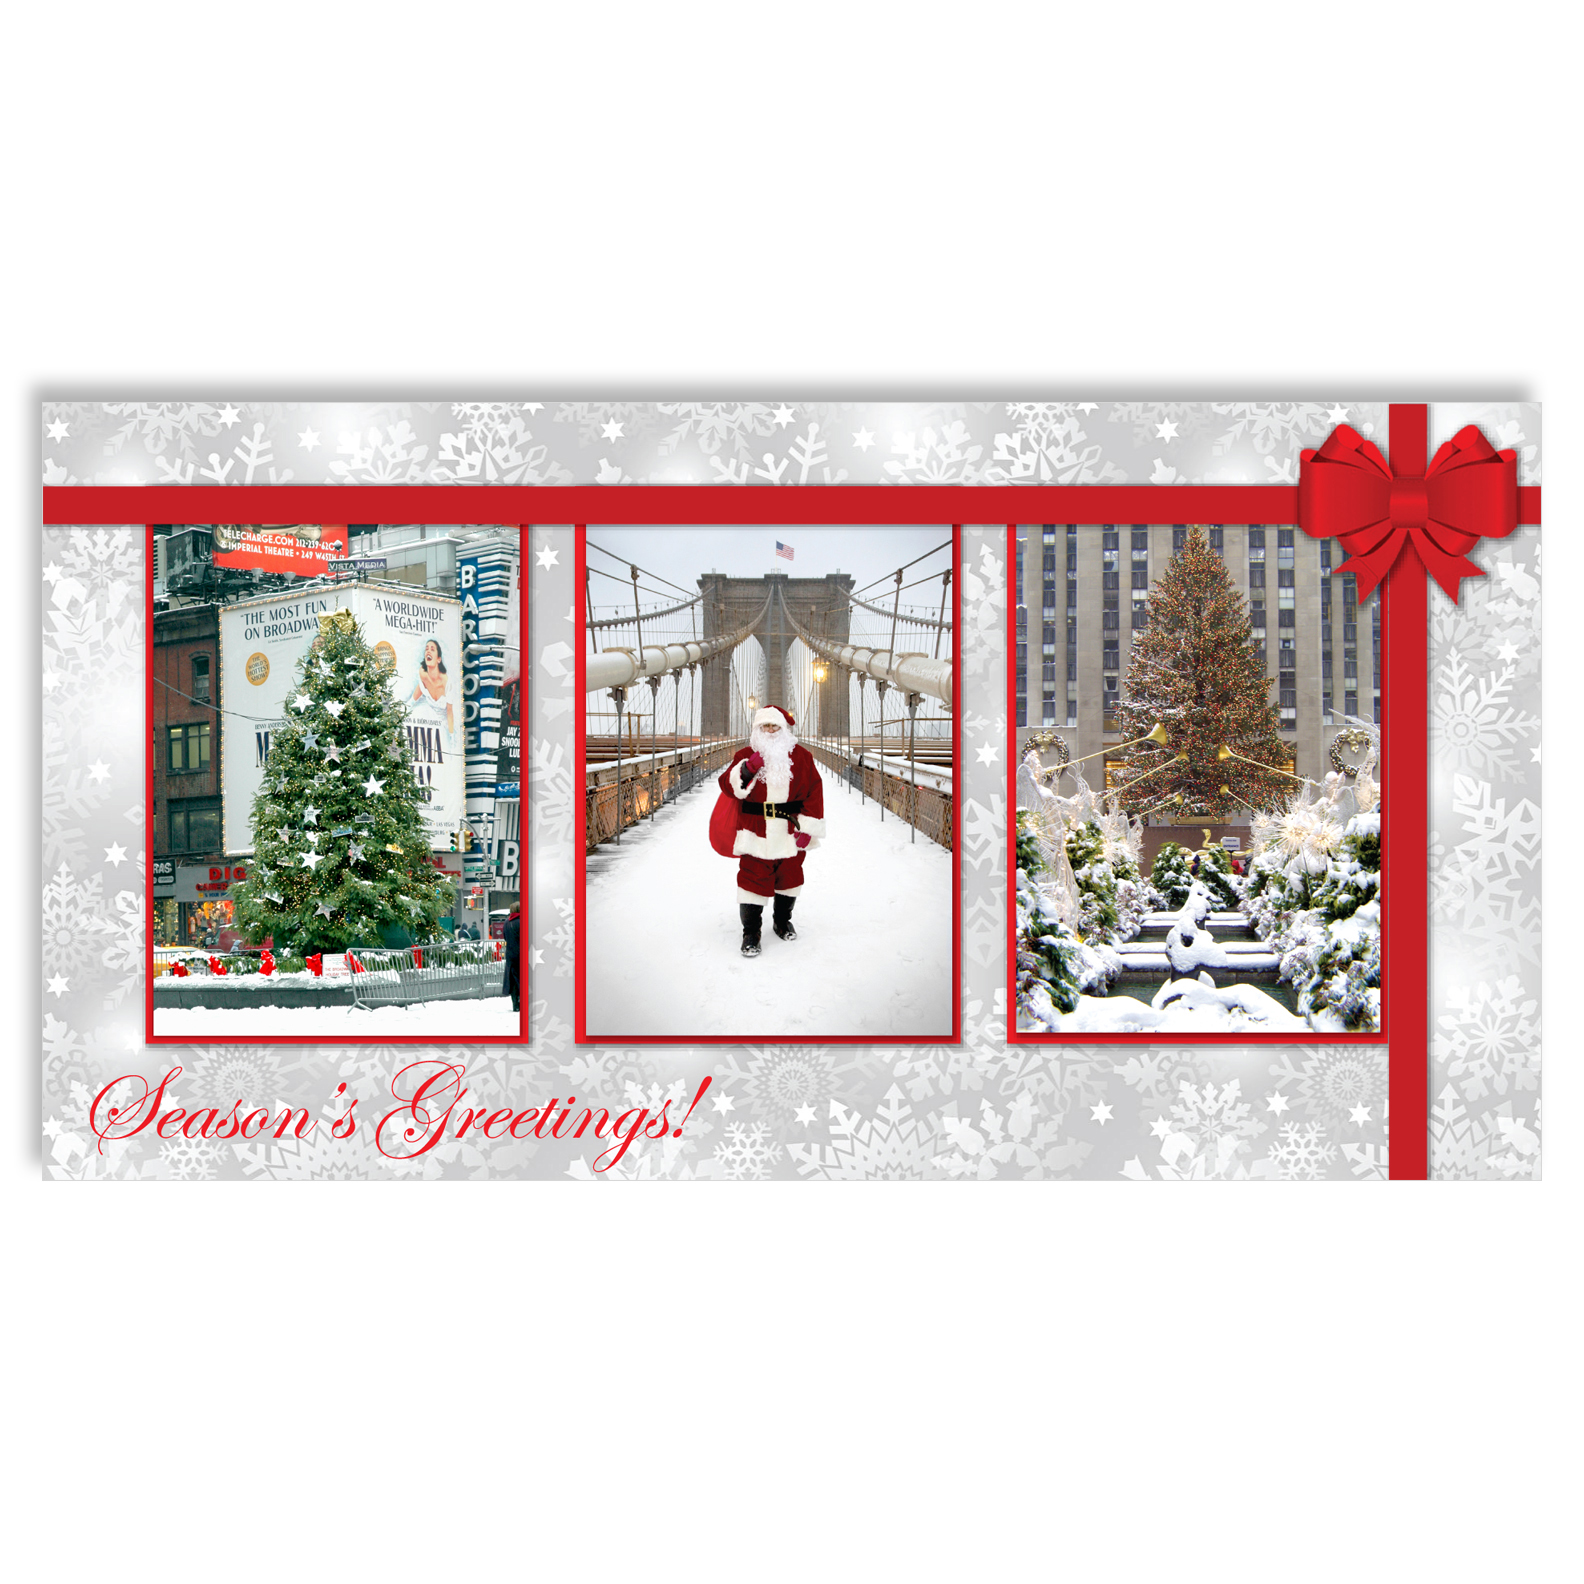 Christmas in New York – Christmas Money Cards Holders Set of 6